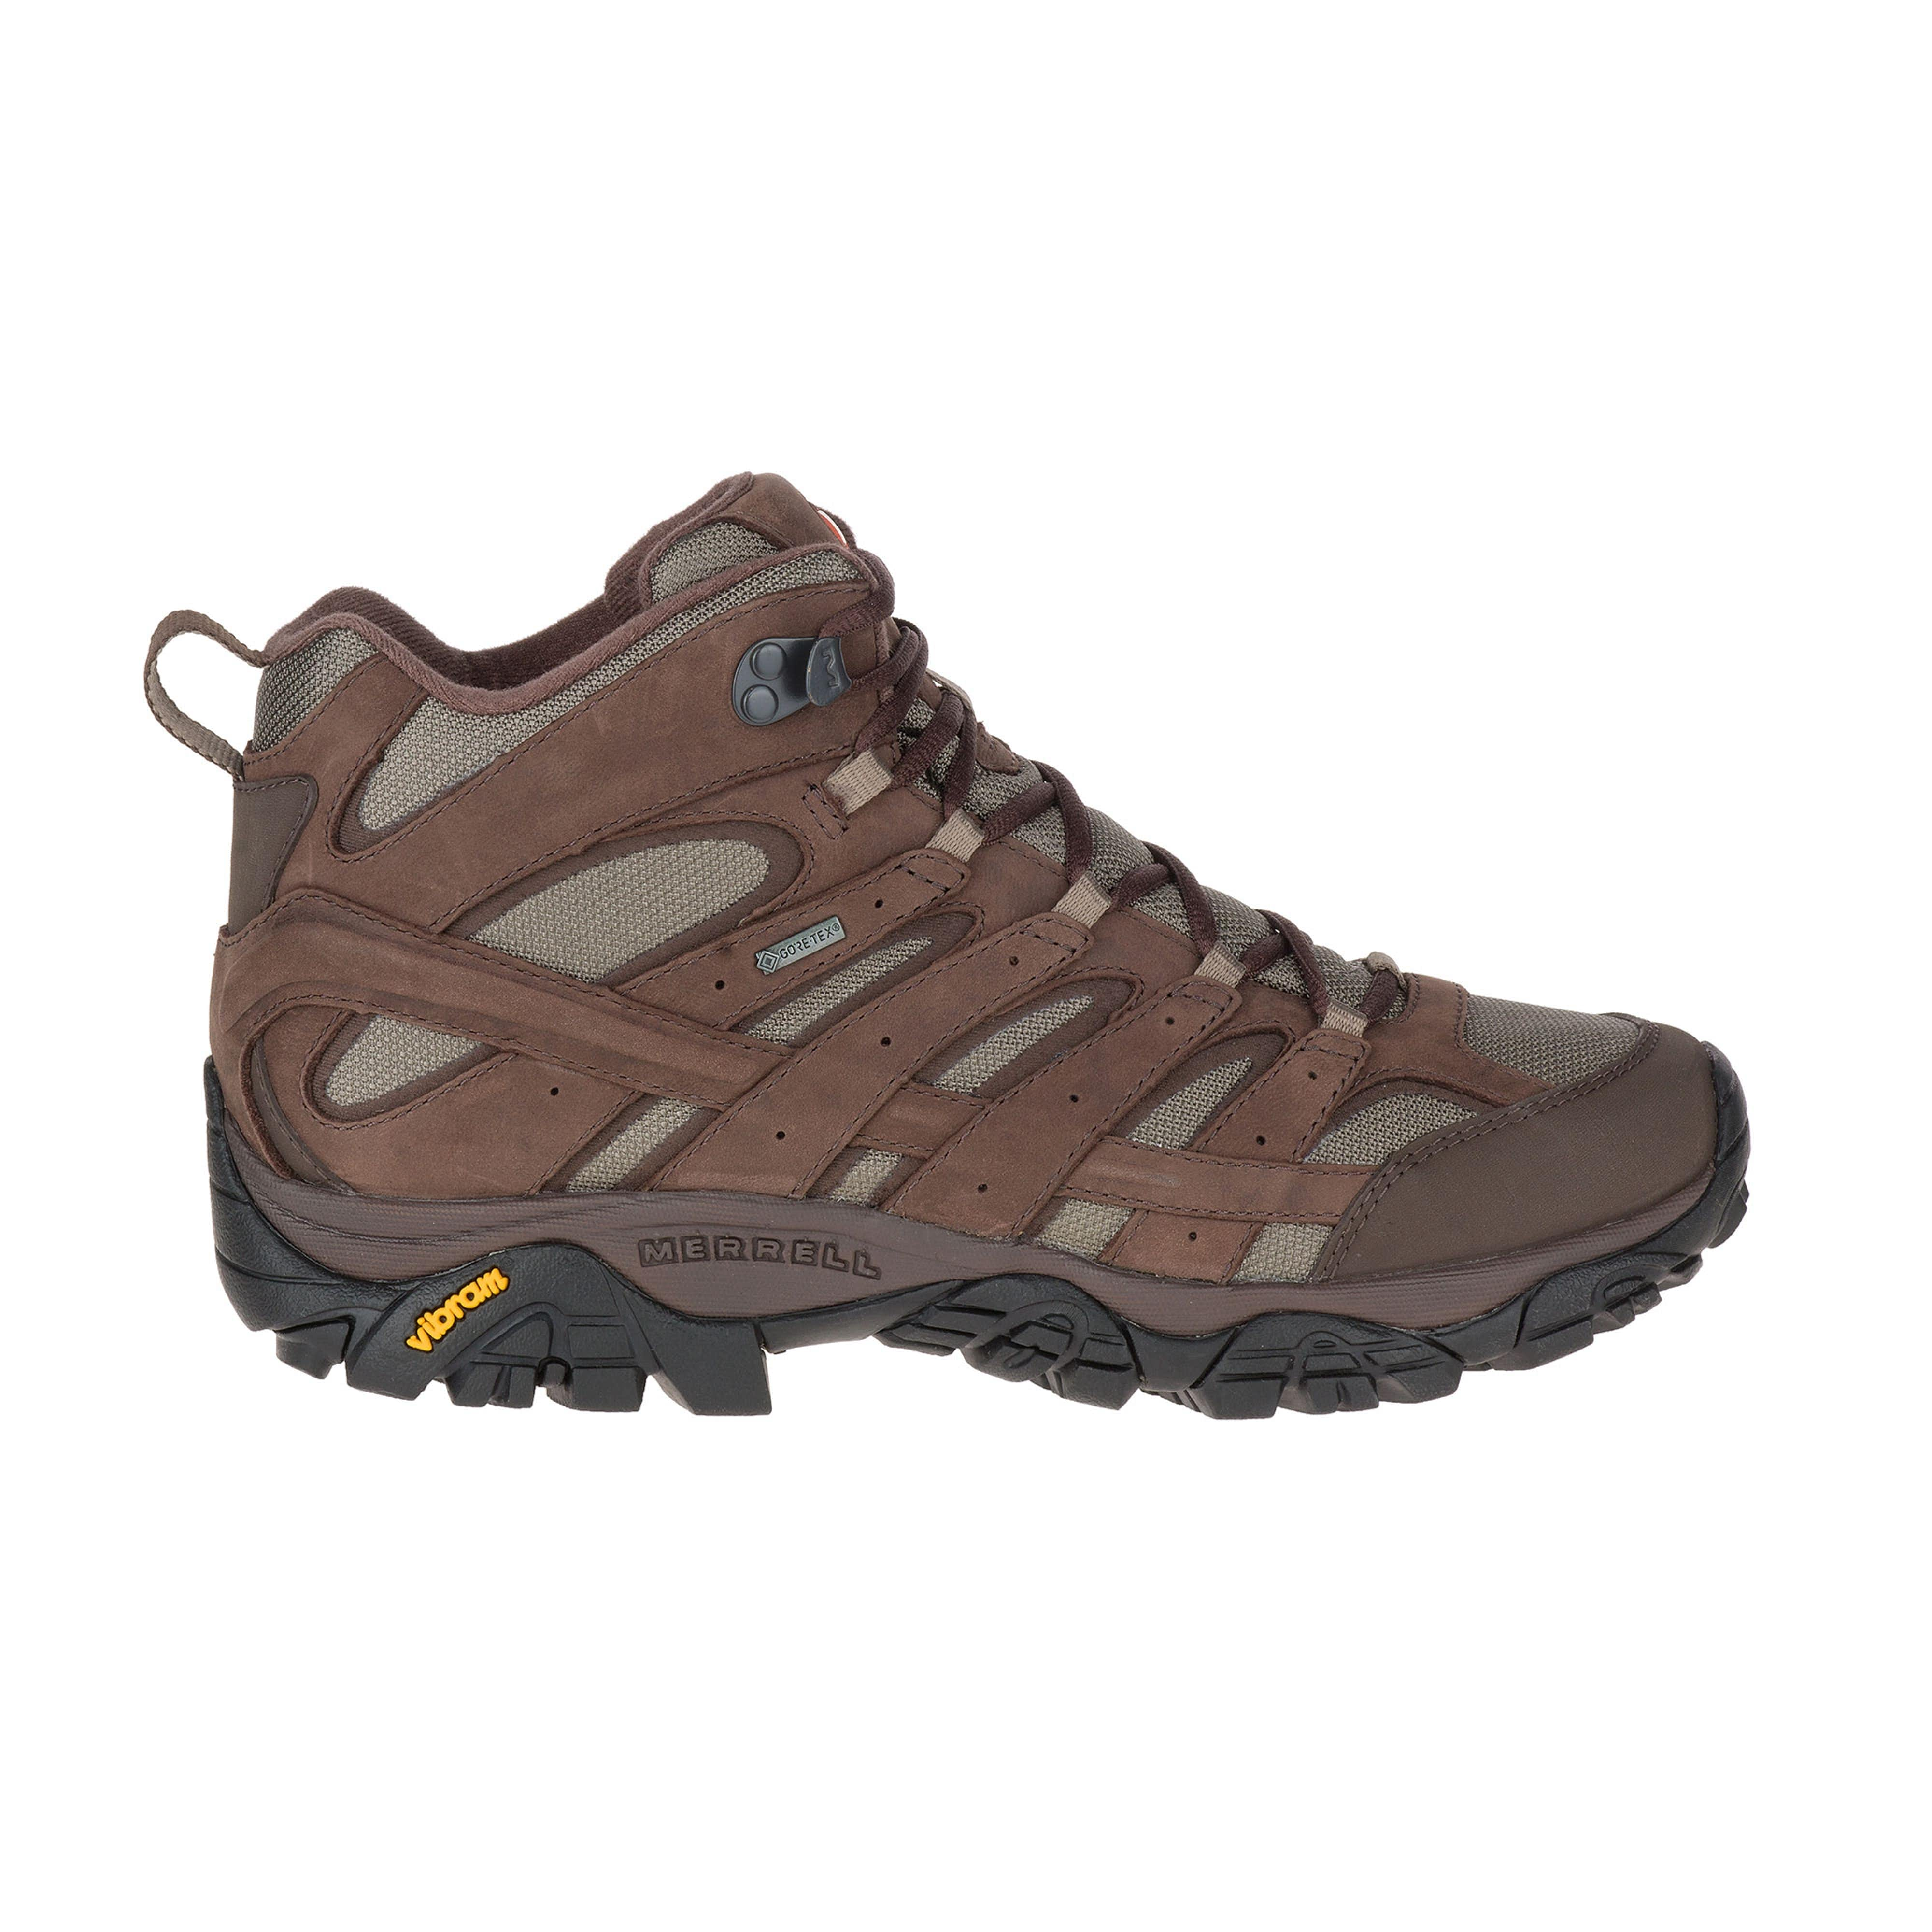 6962490fa76 Merrell Men s Moab 2 Smooth Mid Gore-Tex Hiking Boots